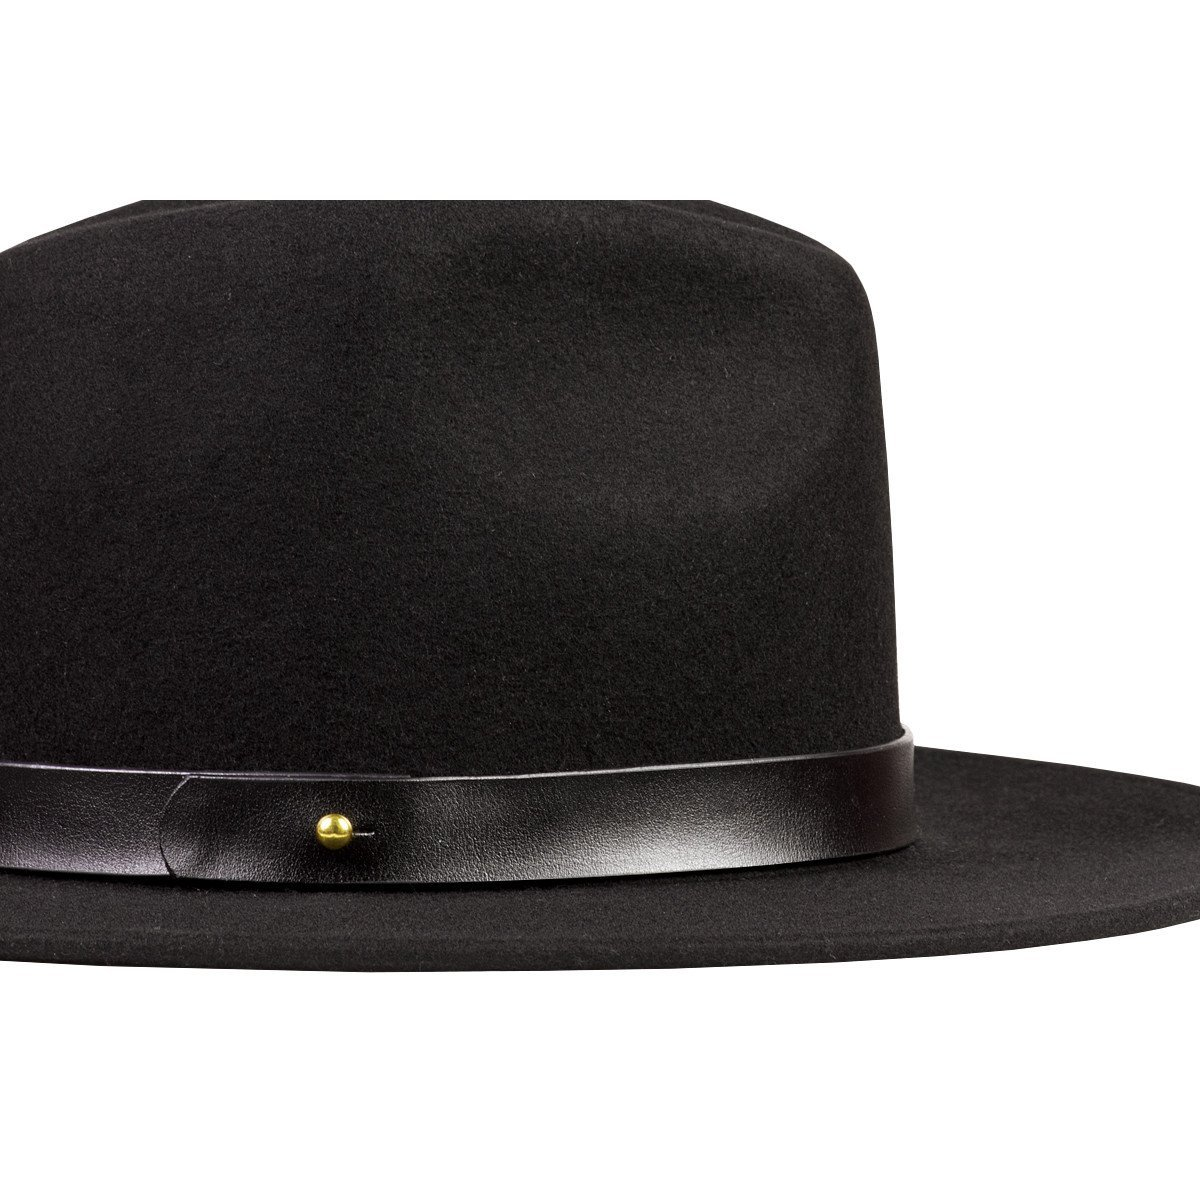 Lack of Color Women's The Prism Tall Luxe Wool Fedora (Black/Black, SM (55cm)) by Lack of Color (Image #2)